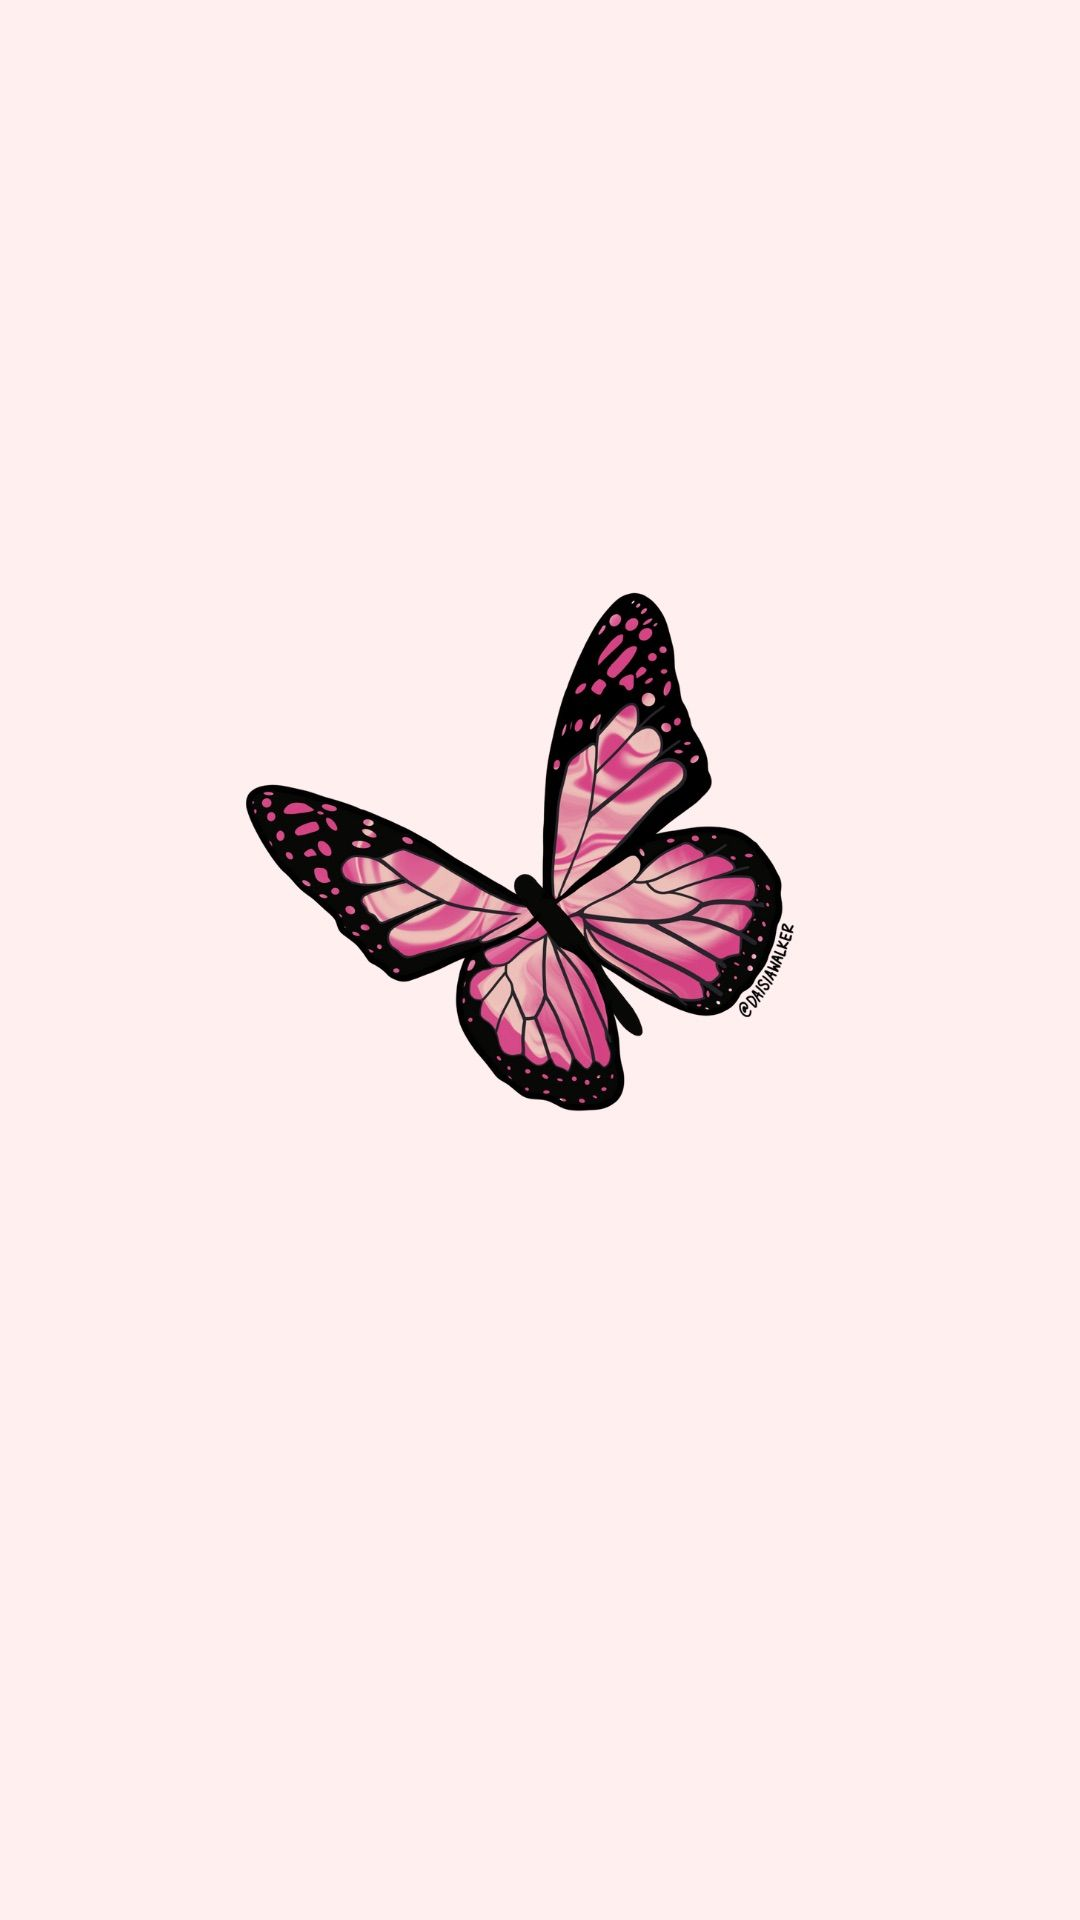 Pink Butterfly In 2020 Pink Wallpaper Backgrounds Iphone Wallpaper Tumblr Aesthetic Pink Wallpaper Iphone